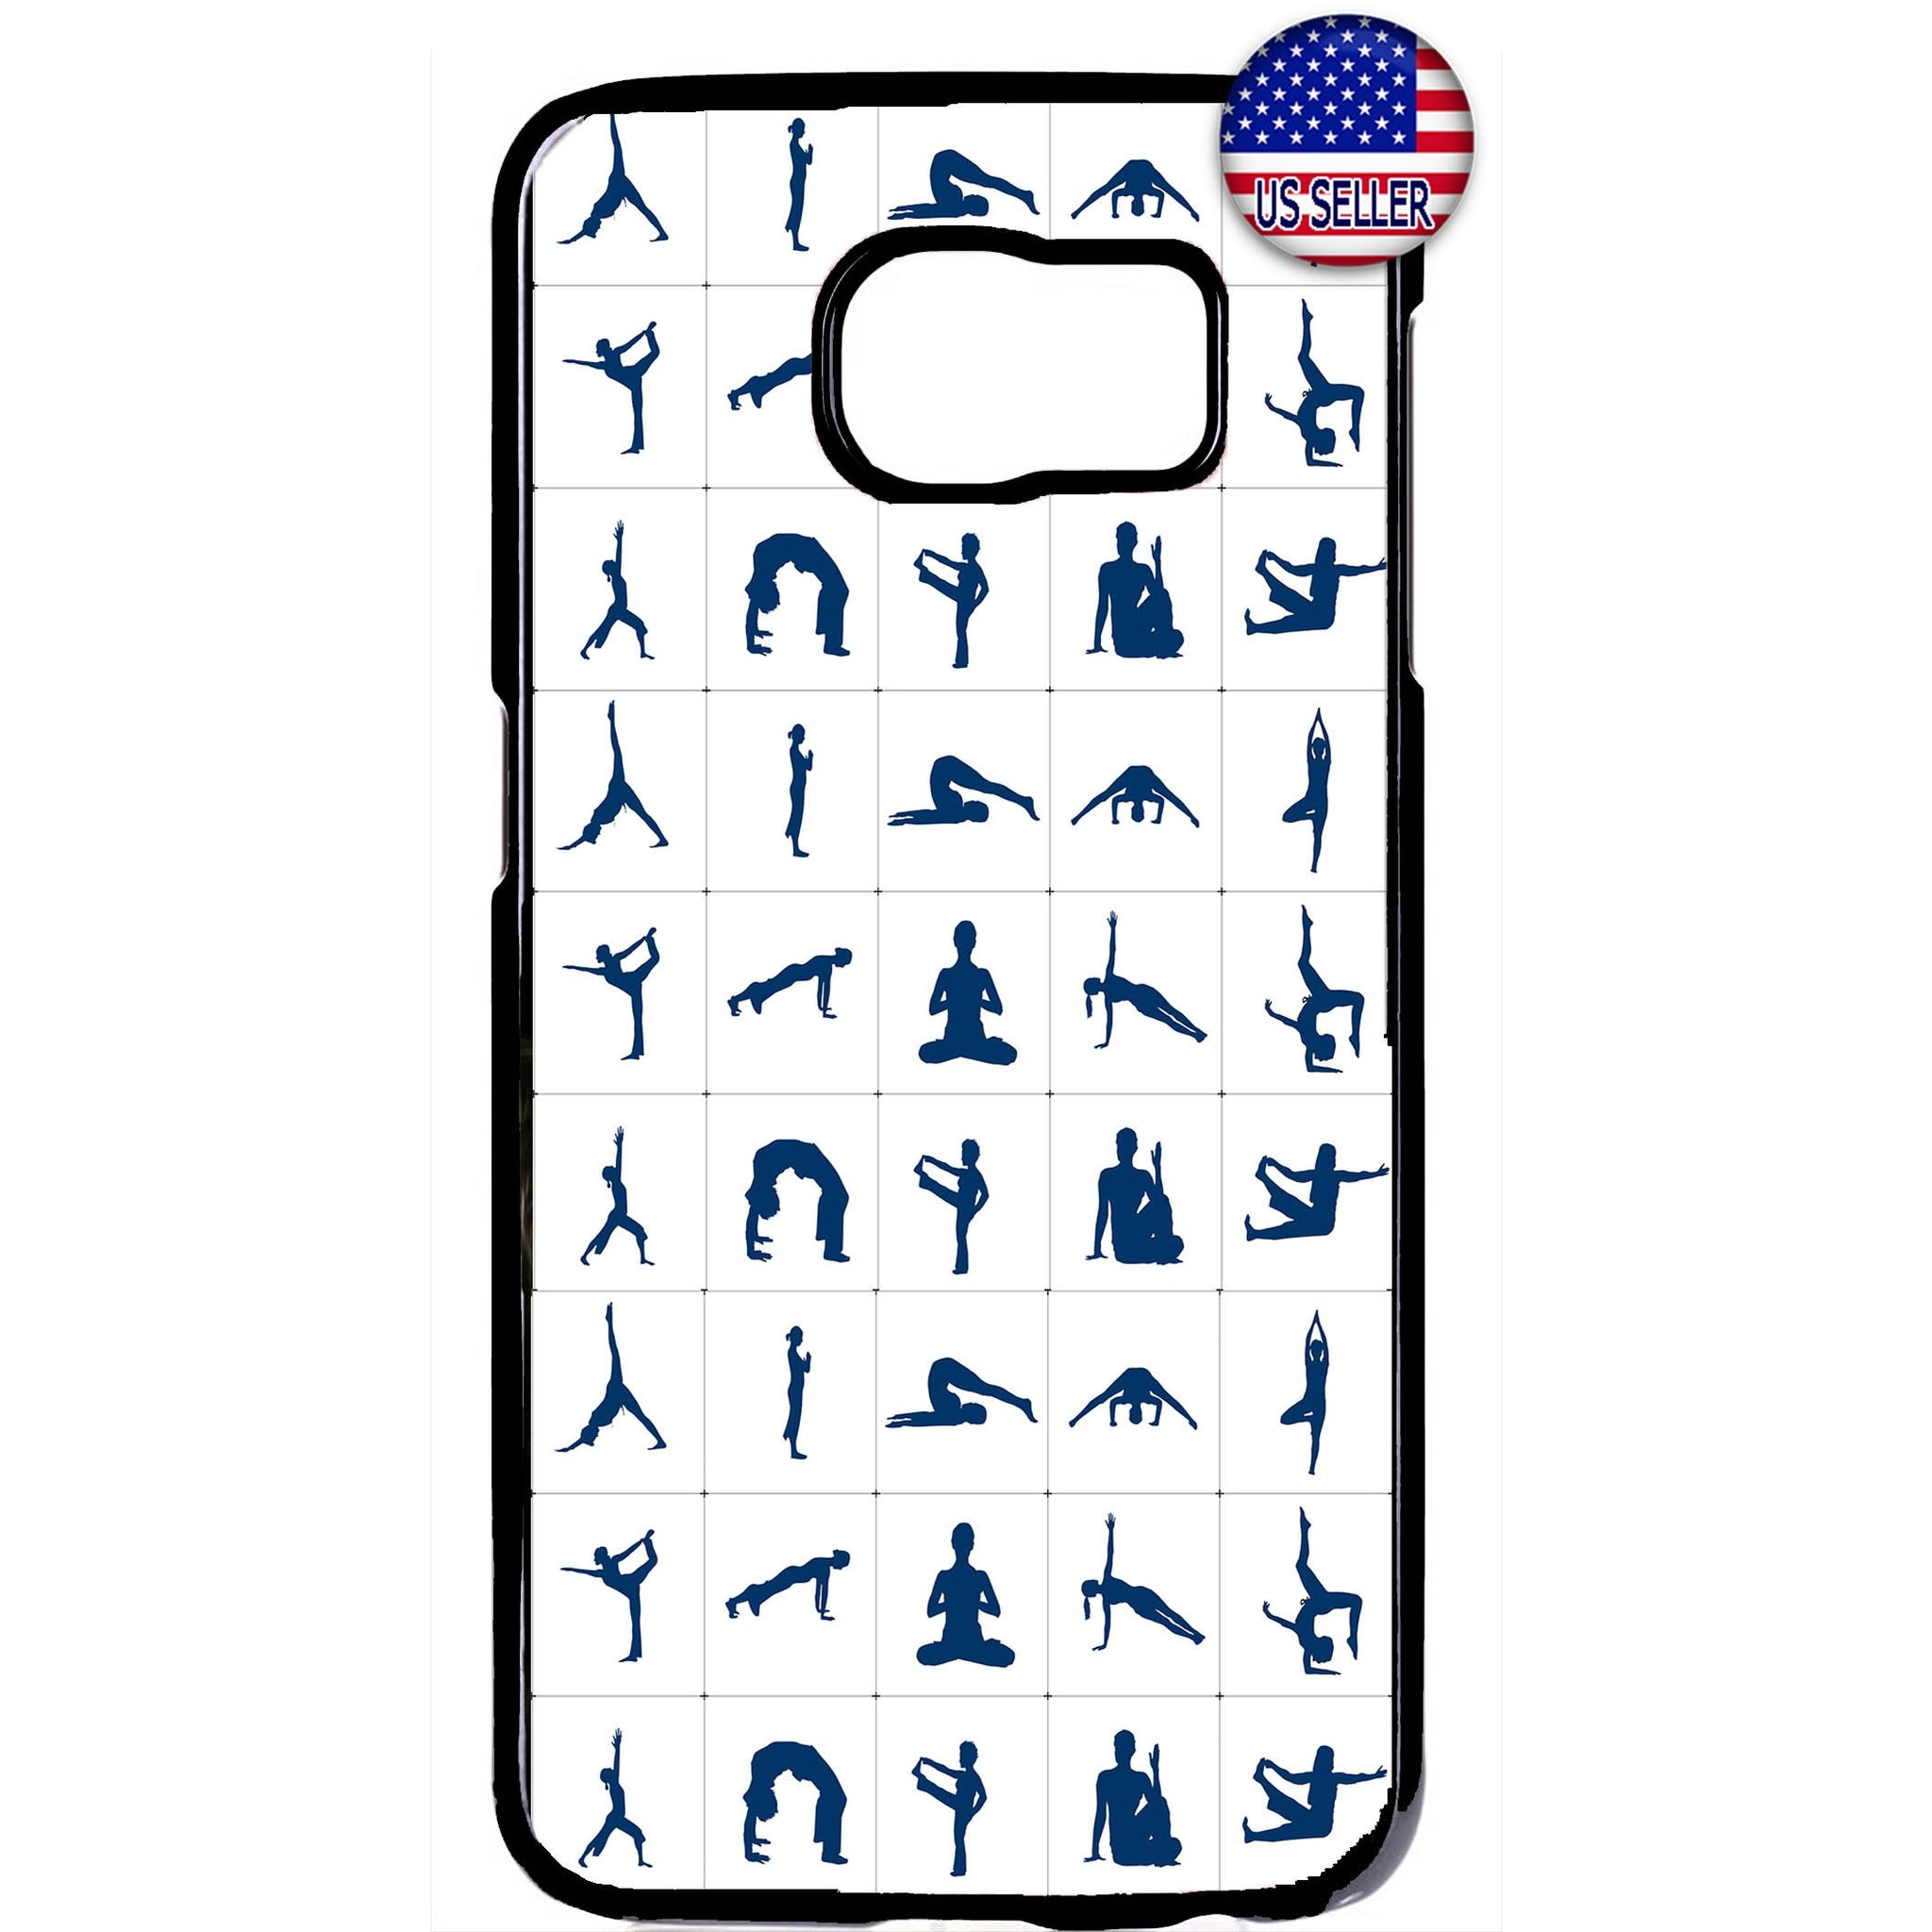 Yoga Fitness Poses Emoji Rubber Case Cover For Samsung Galaxy Note